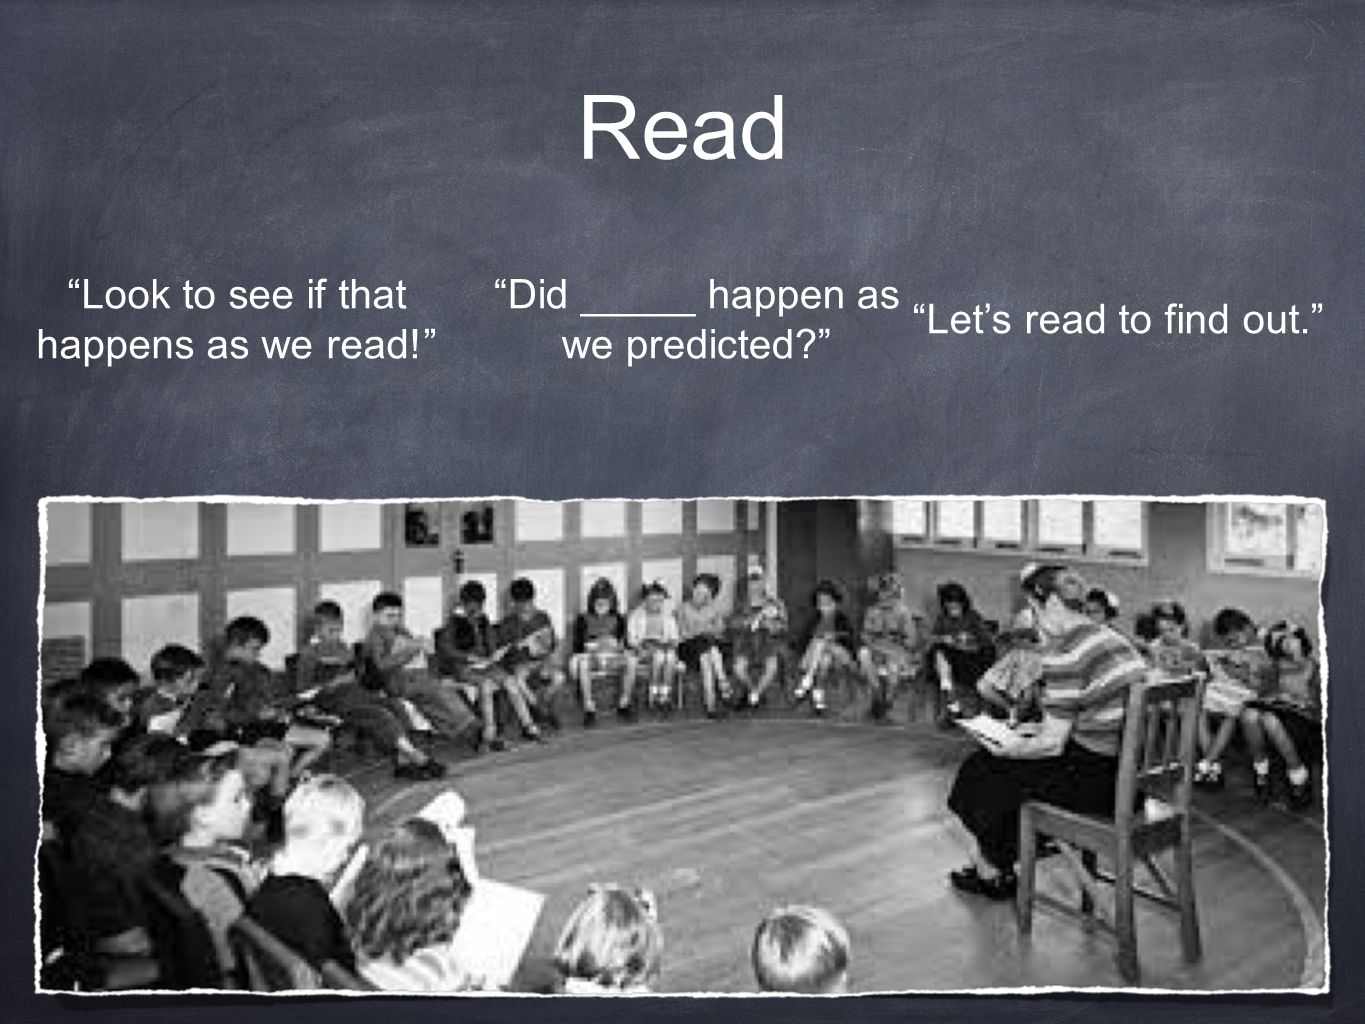 Read Look to see if that happens as we read!